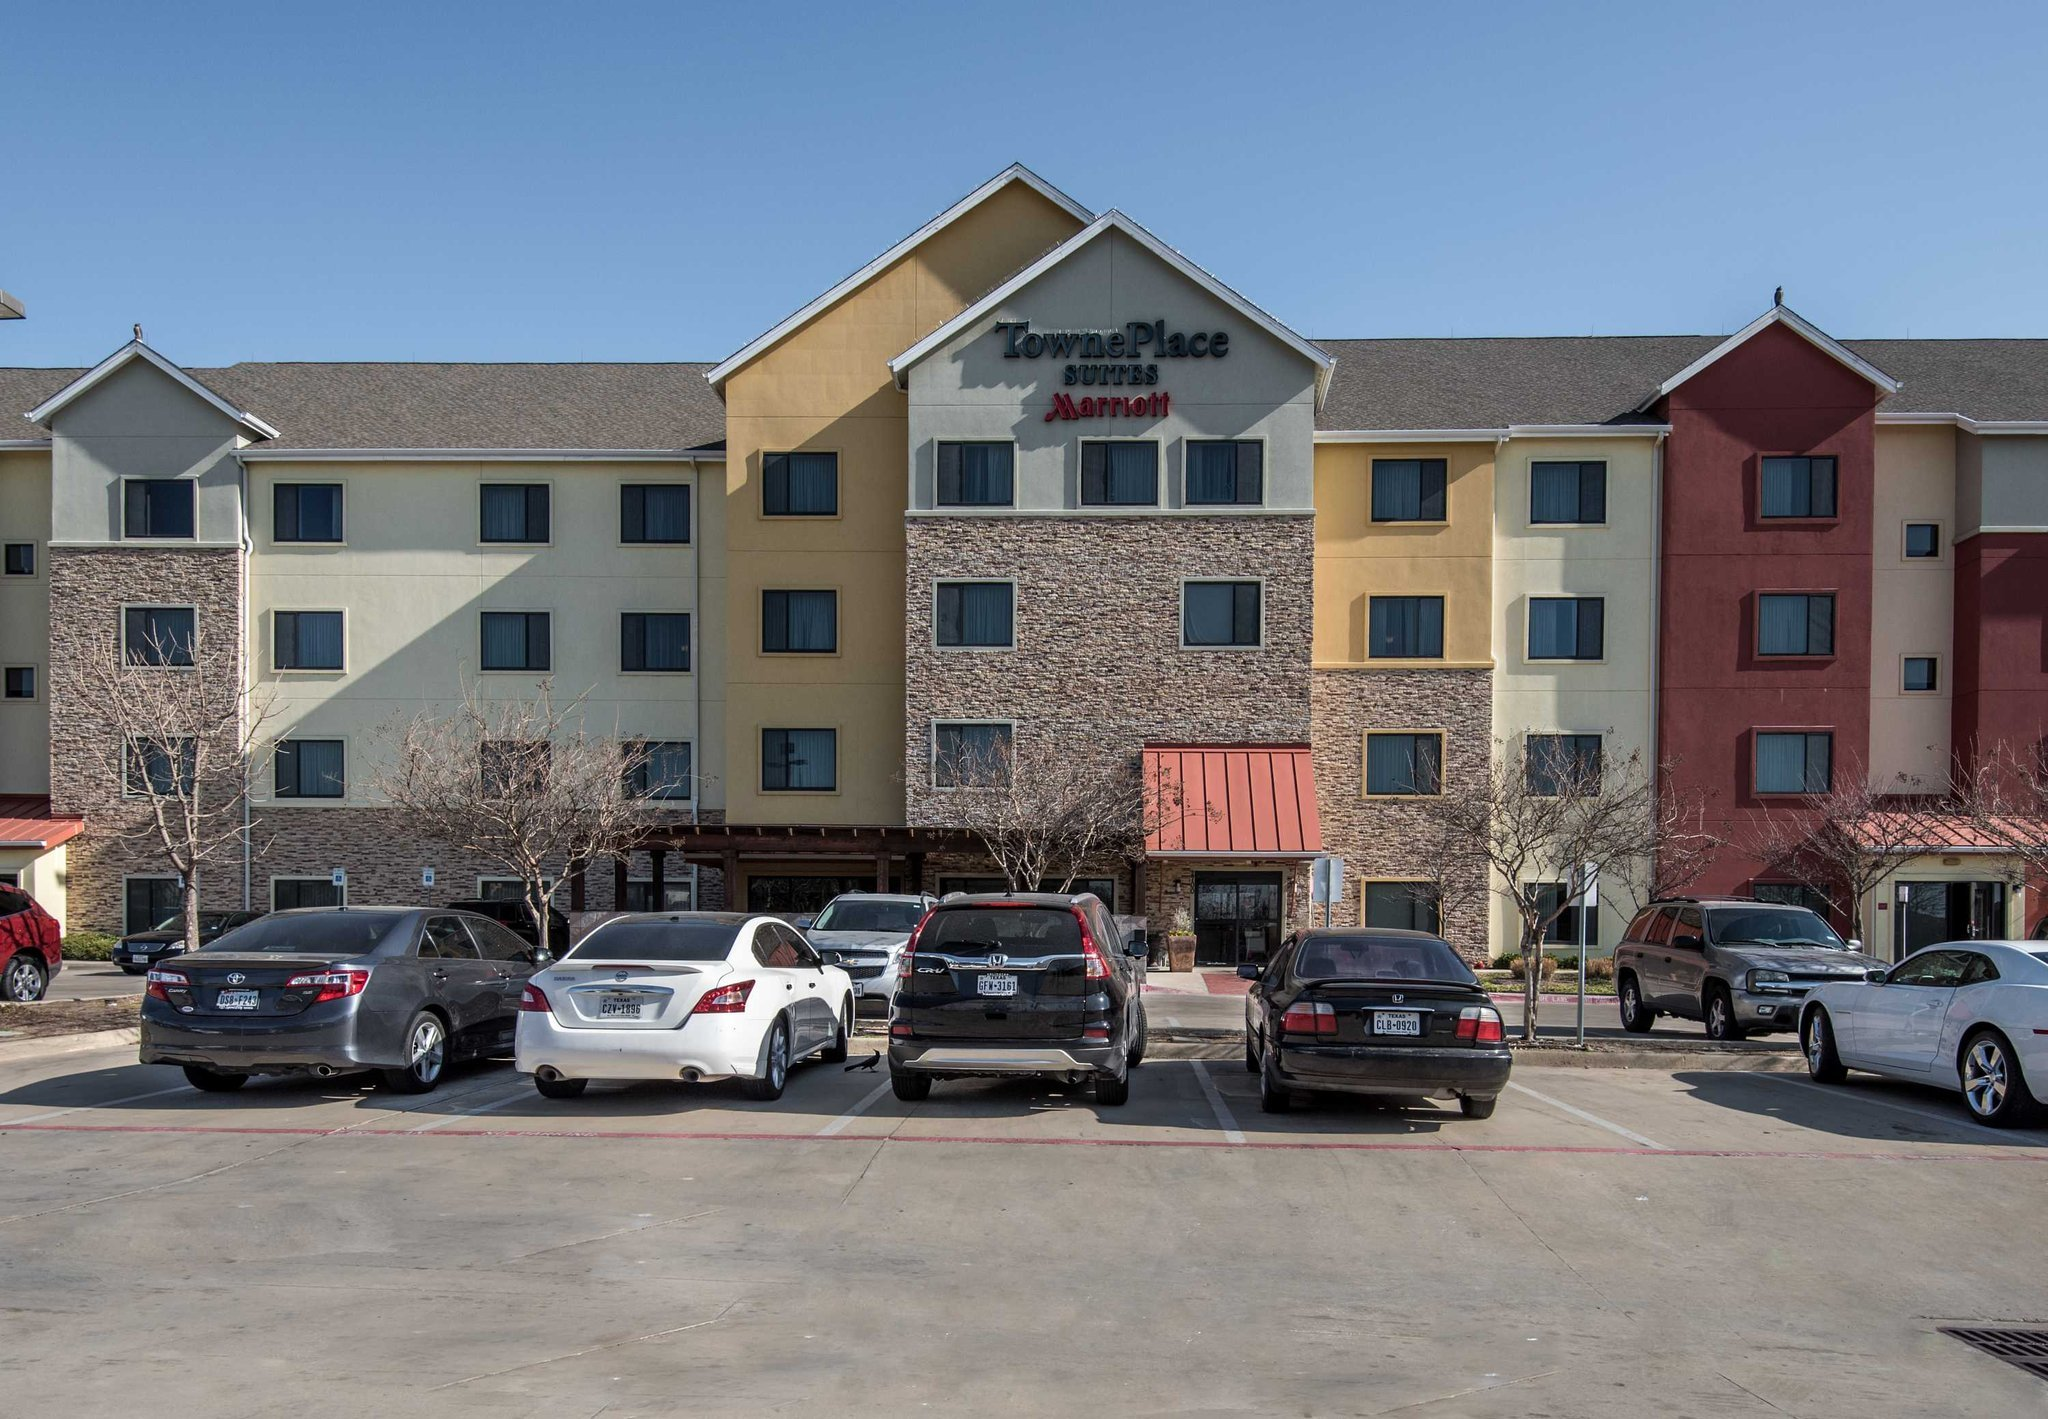 TownePlace Suites Dallas DeSoto